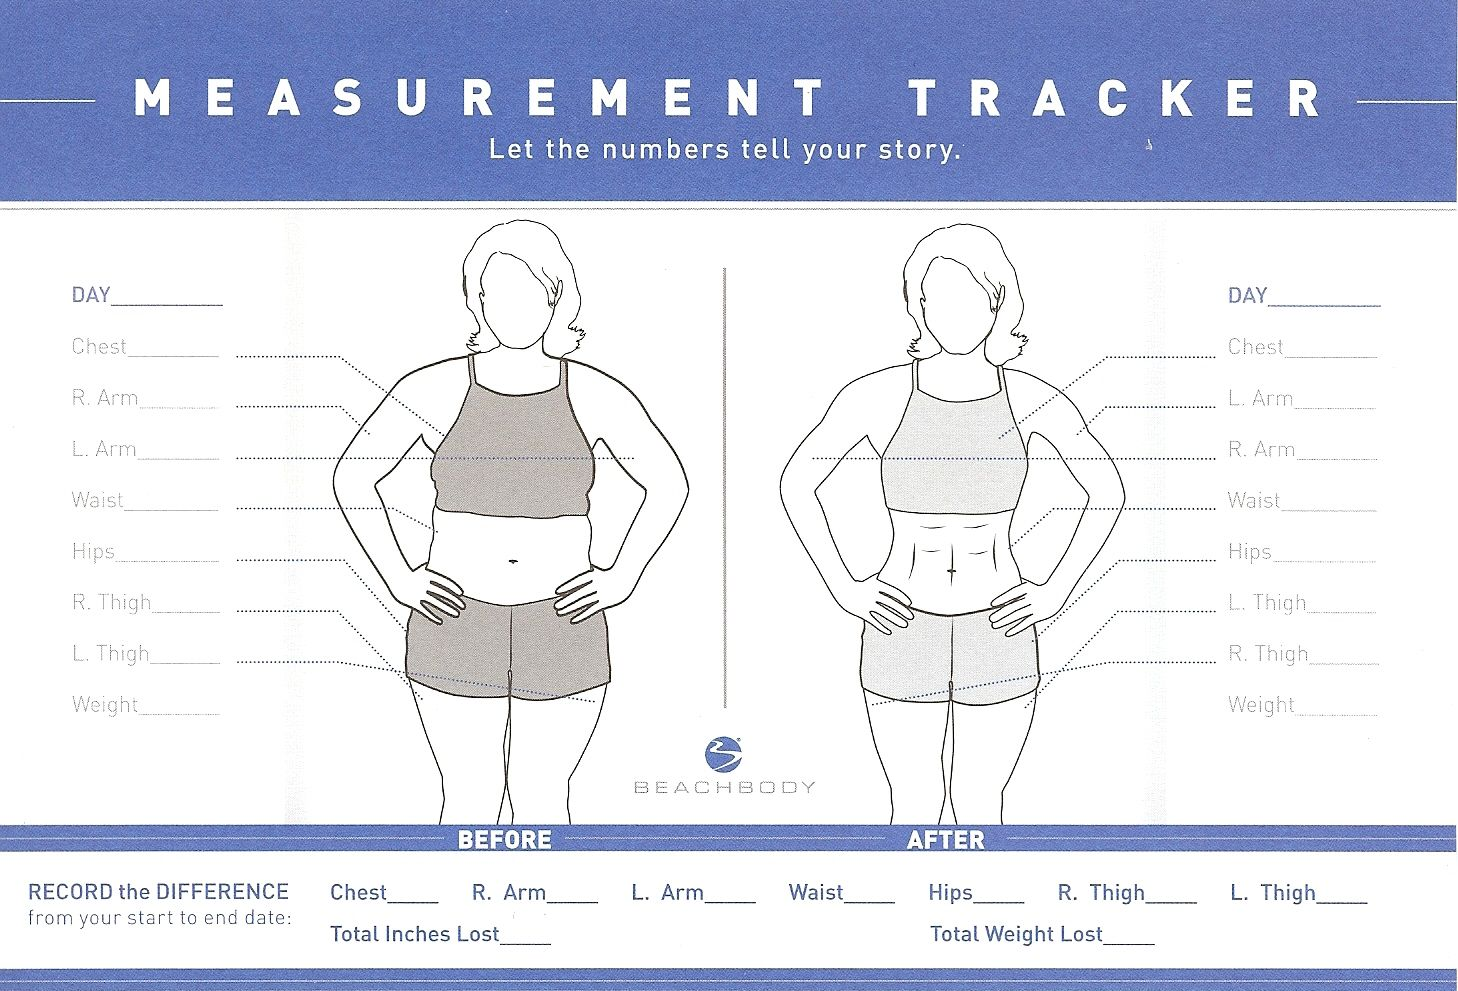 beachbody measurement tracker chart measurements tracker female